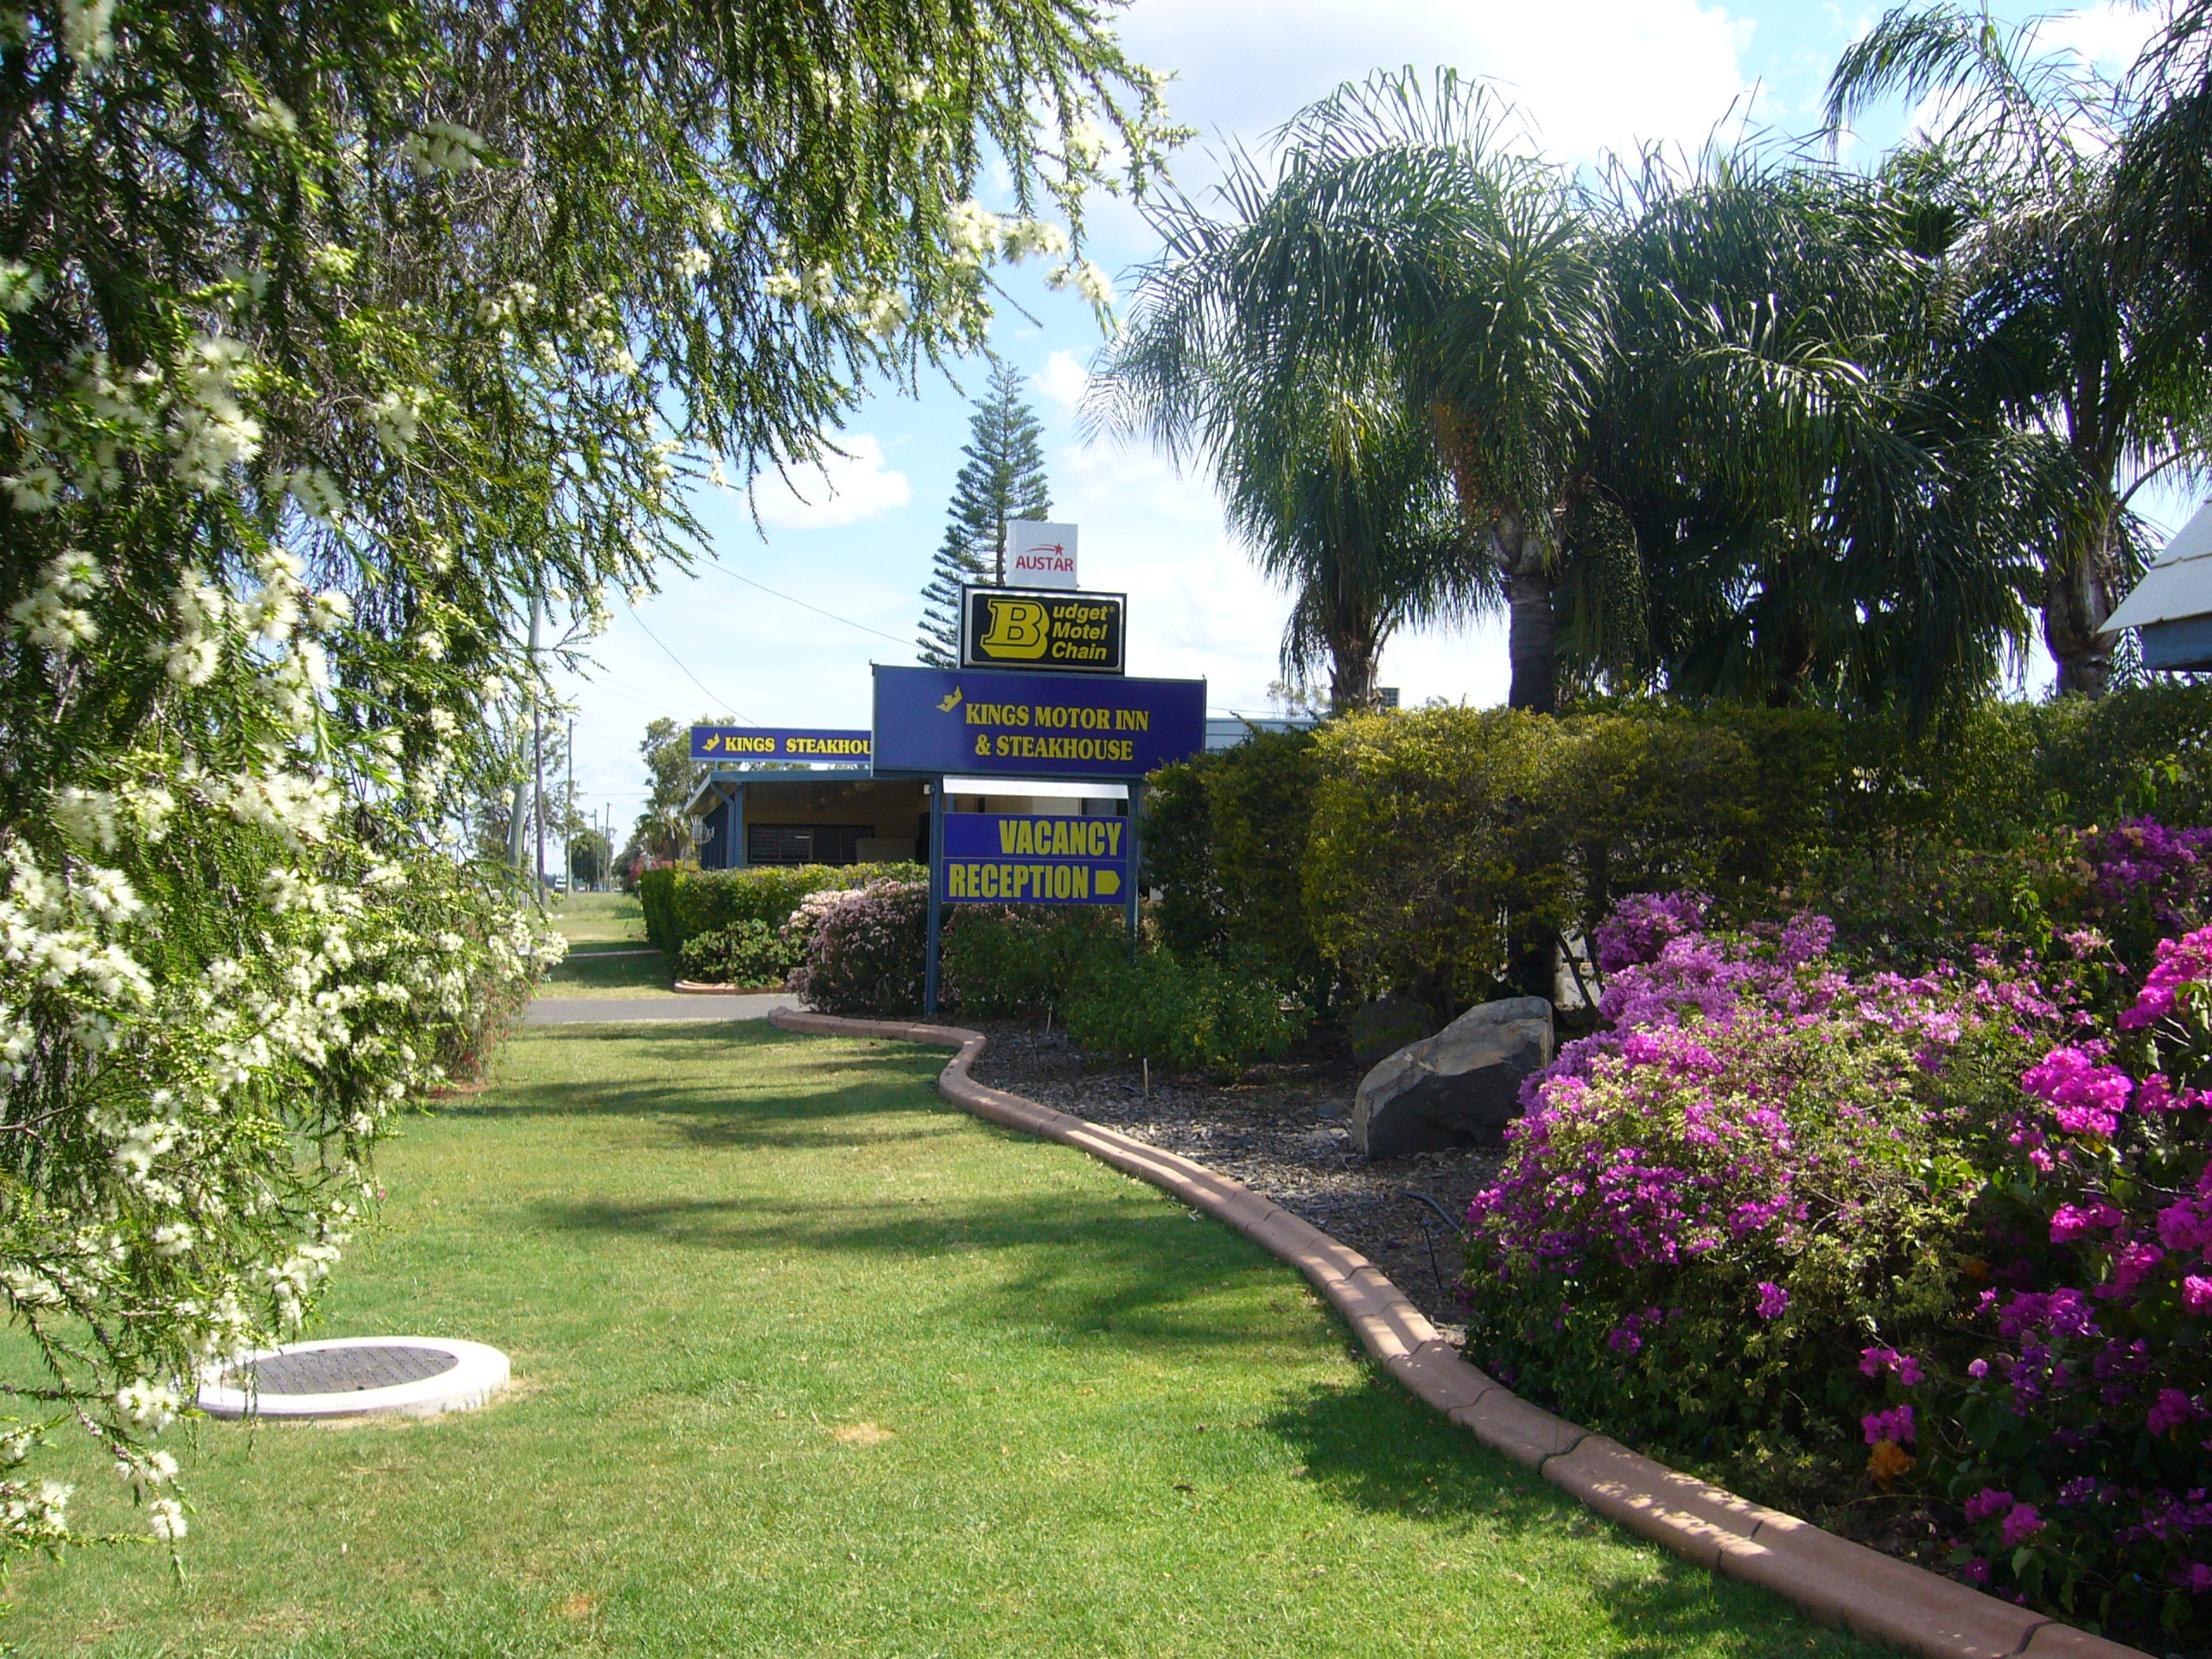 Kings Motor Inn  Steakhouse - Carnarvon Accommodation